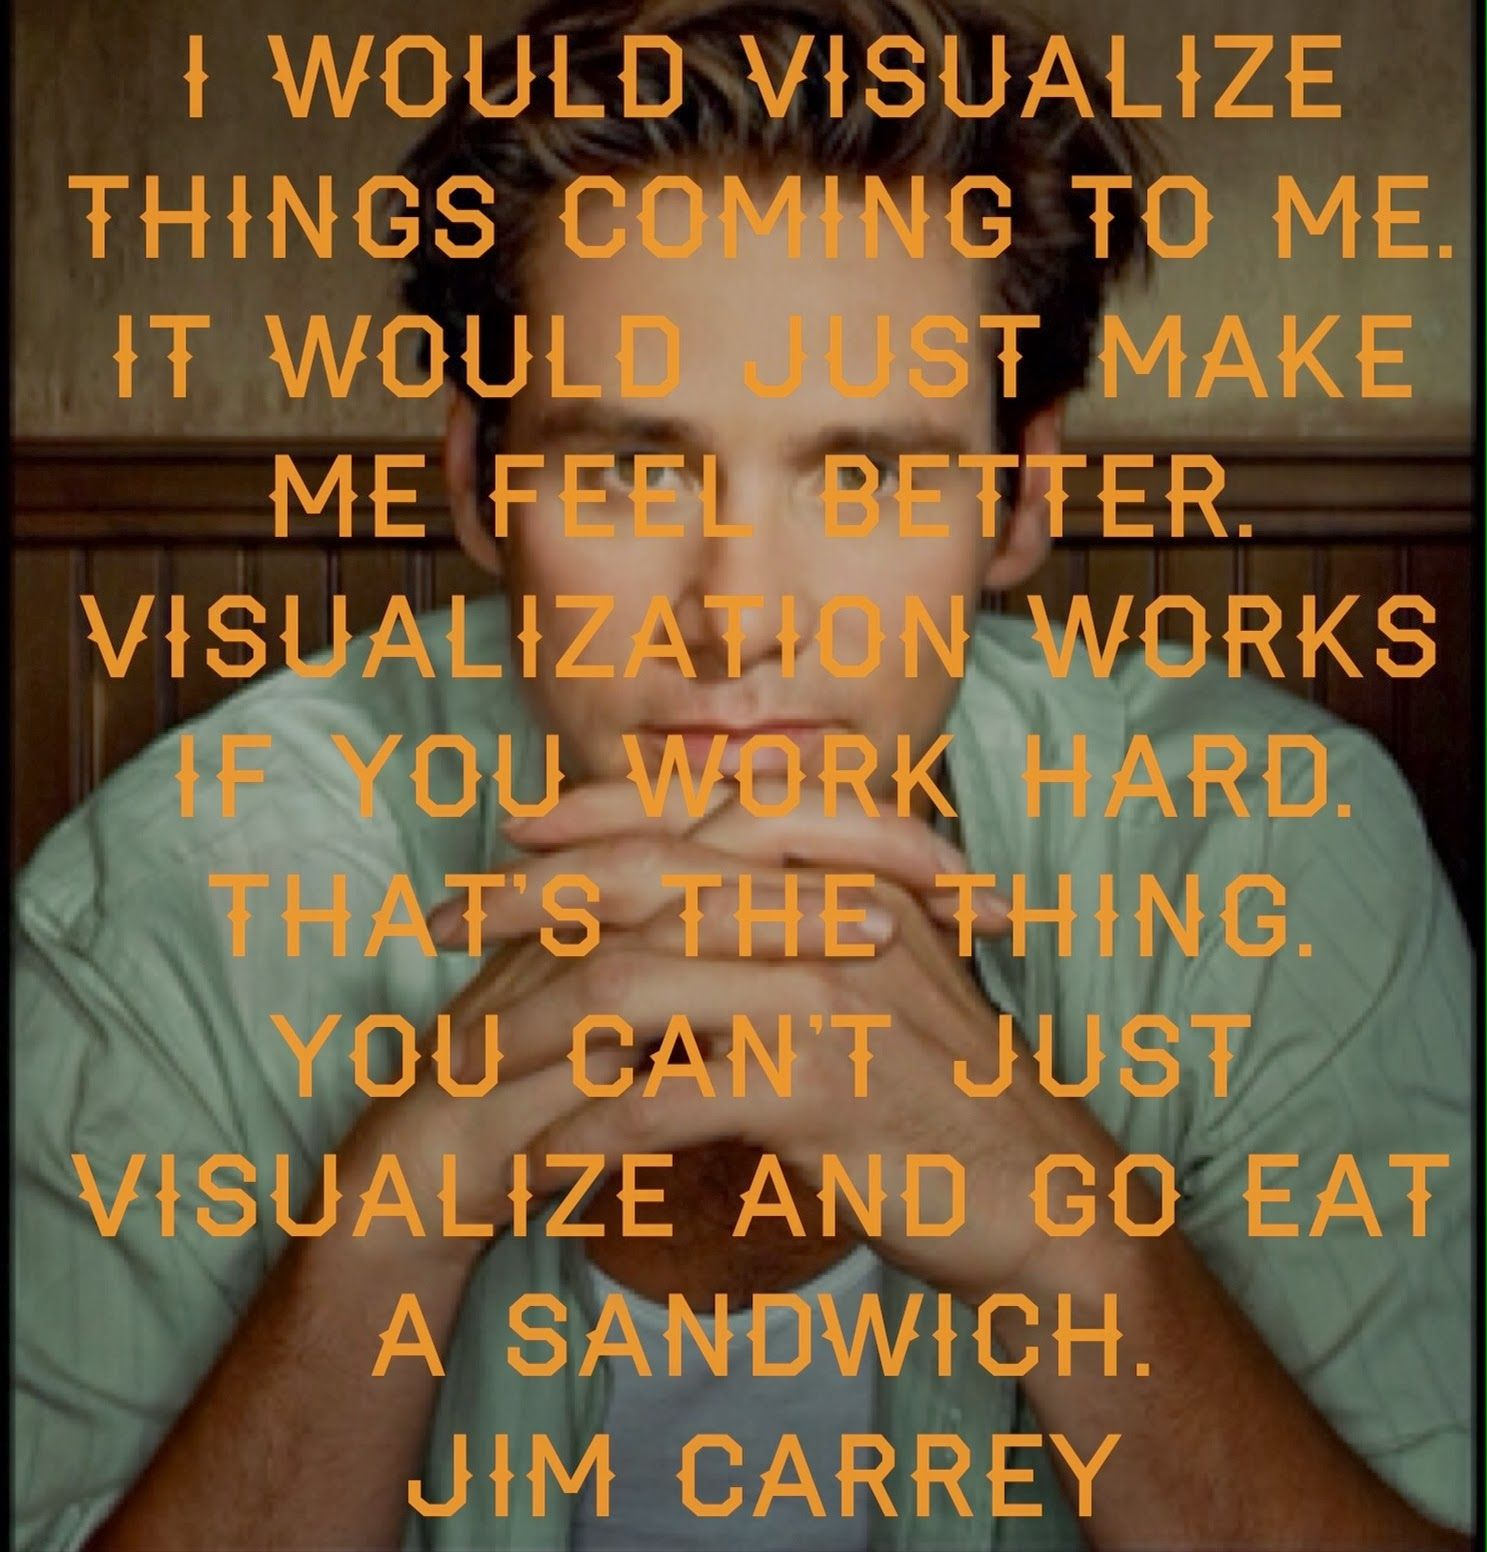 Don't just eat a sandwich - Jim Carrey quote | Jim carrey ...